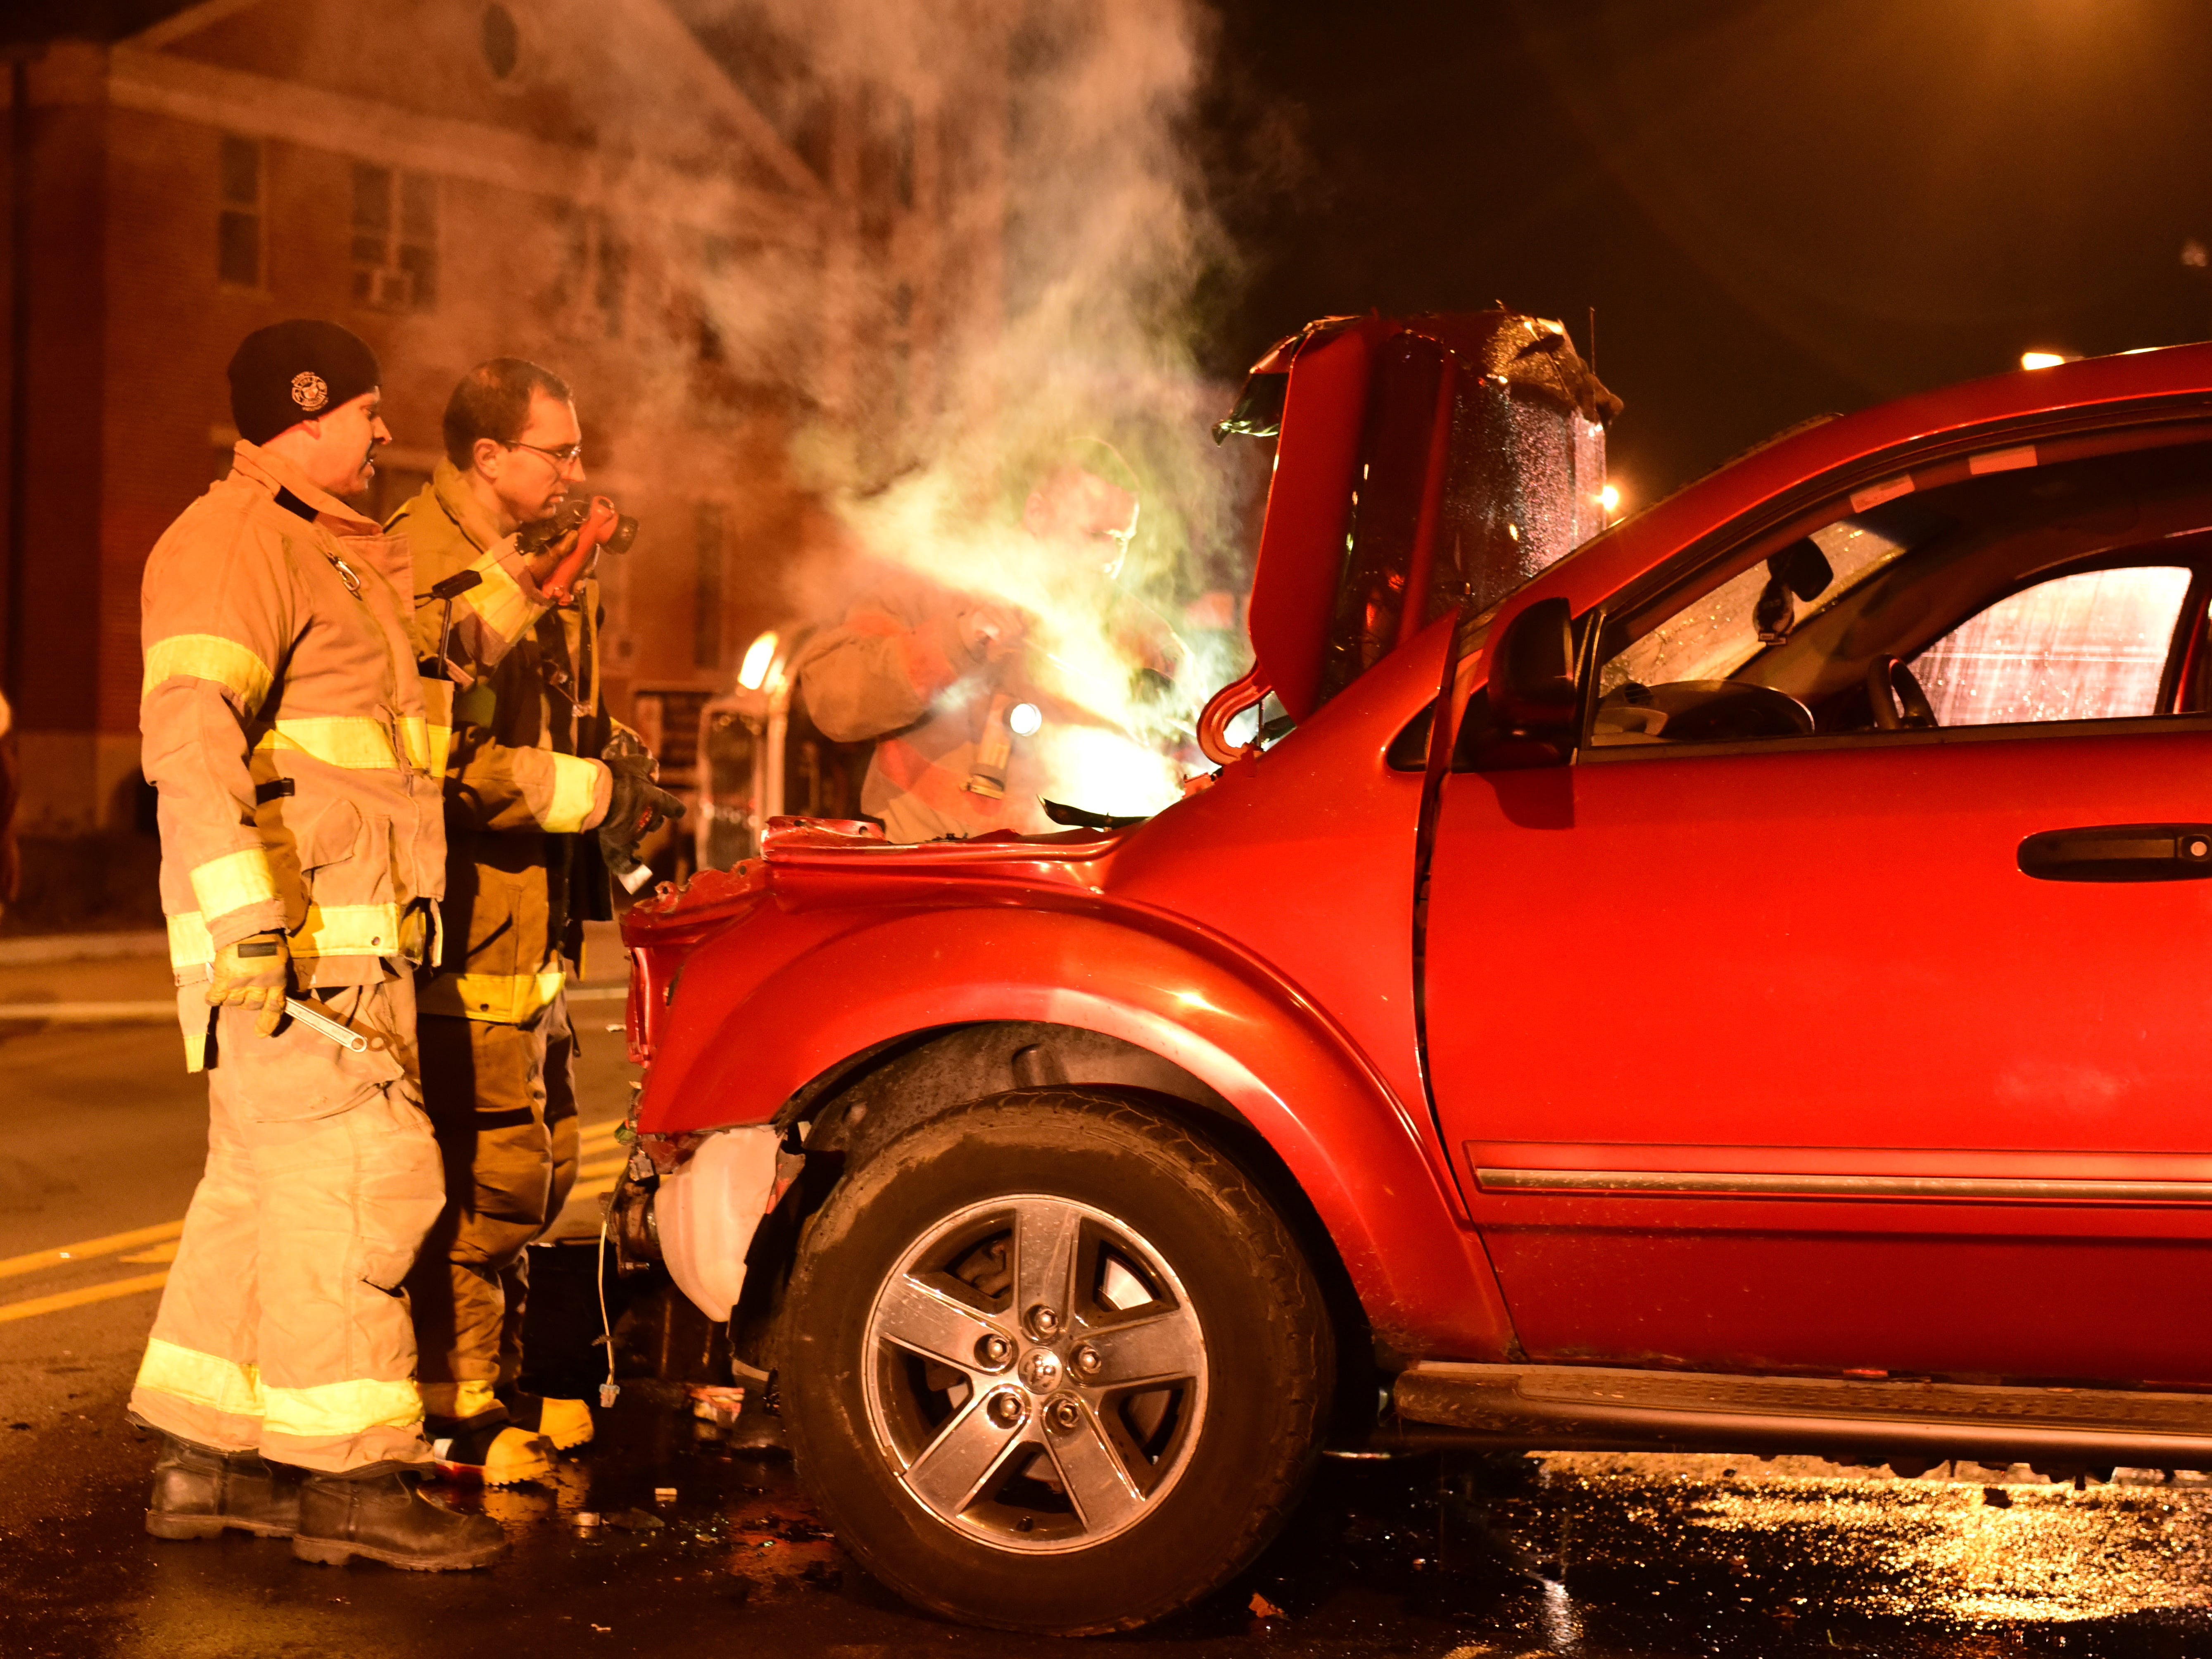 Firefighters take a look at the smoking radiator of the SUV involved in Friday's wreck.